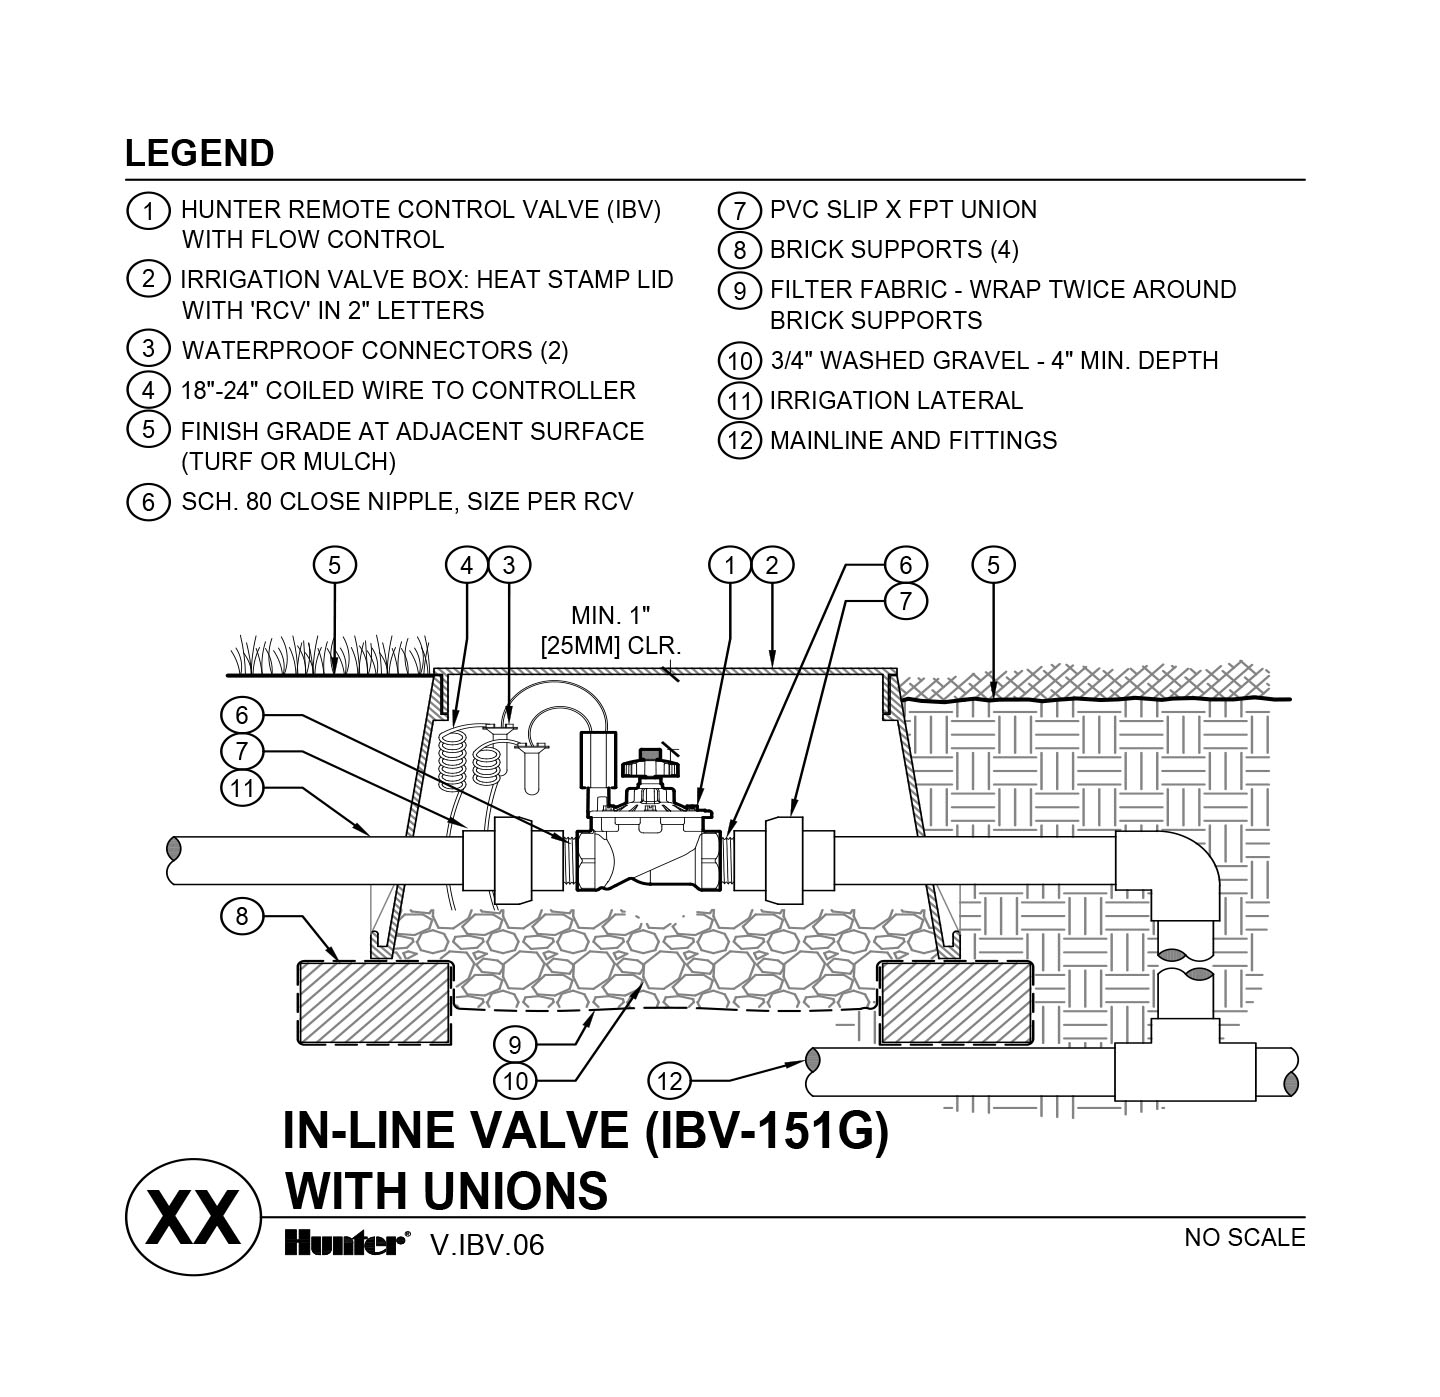 CAD - IBV-151G with unions